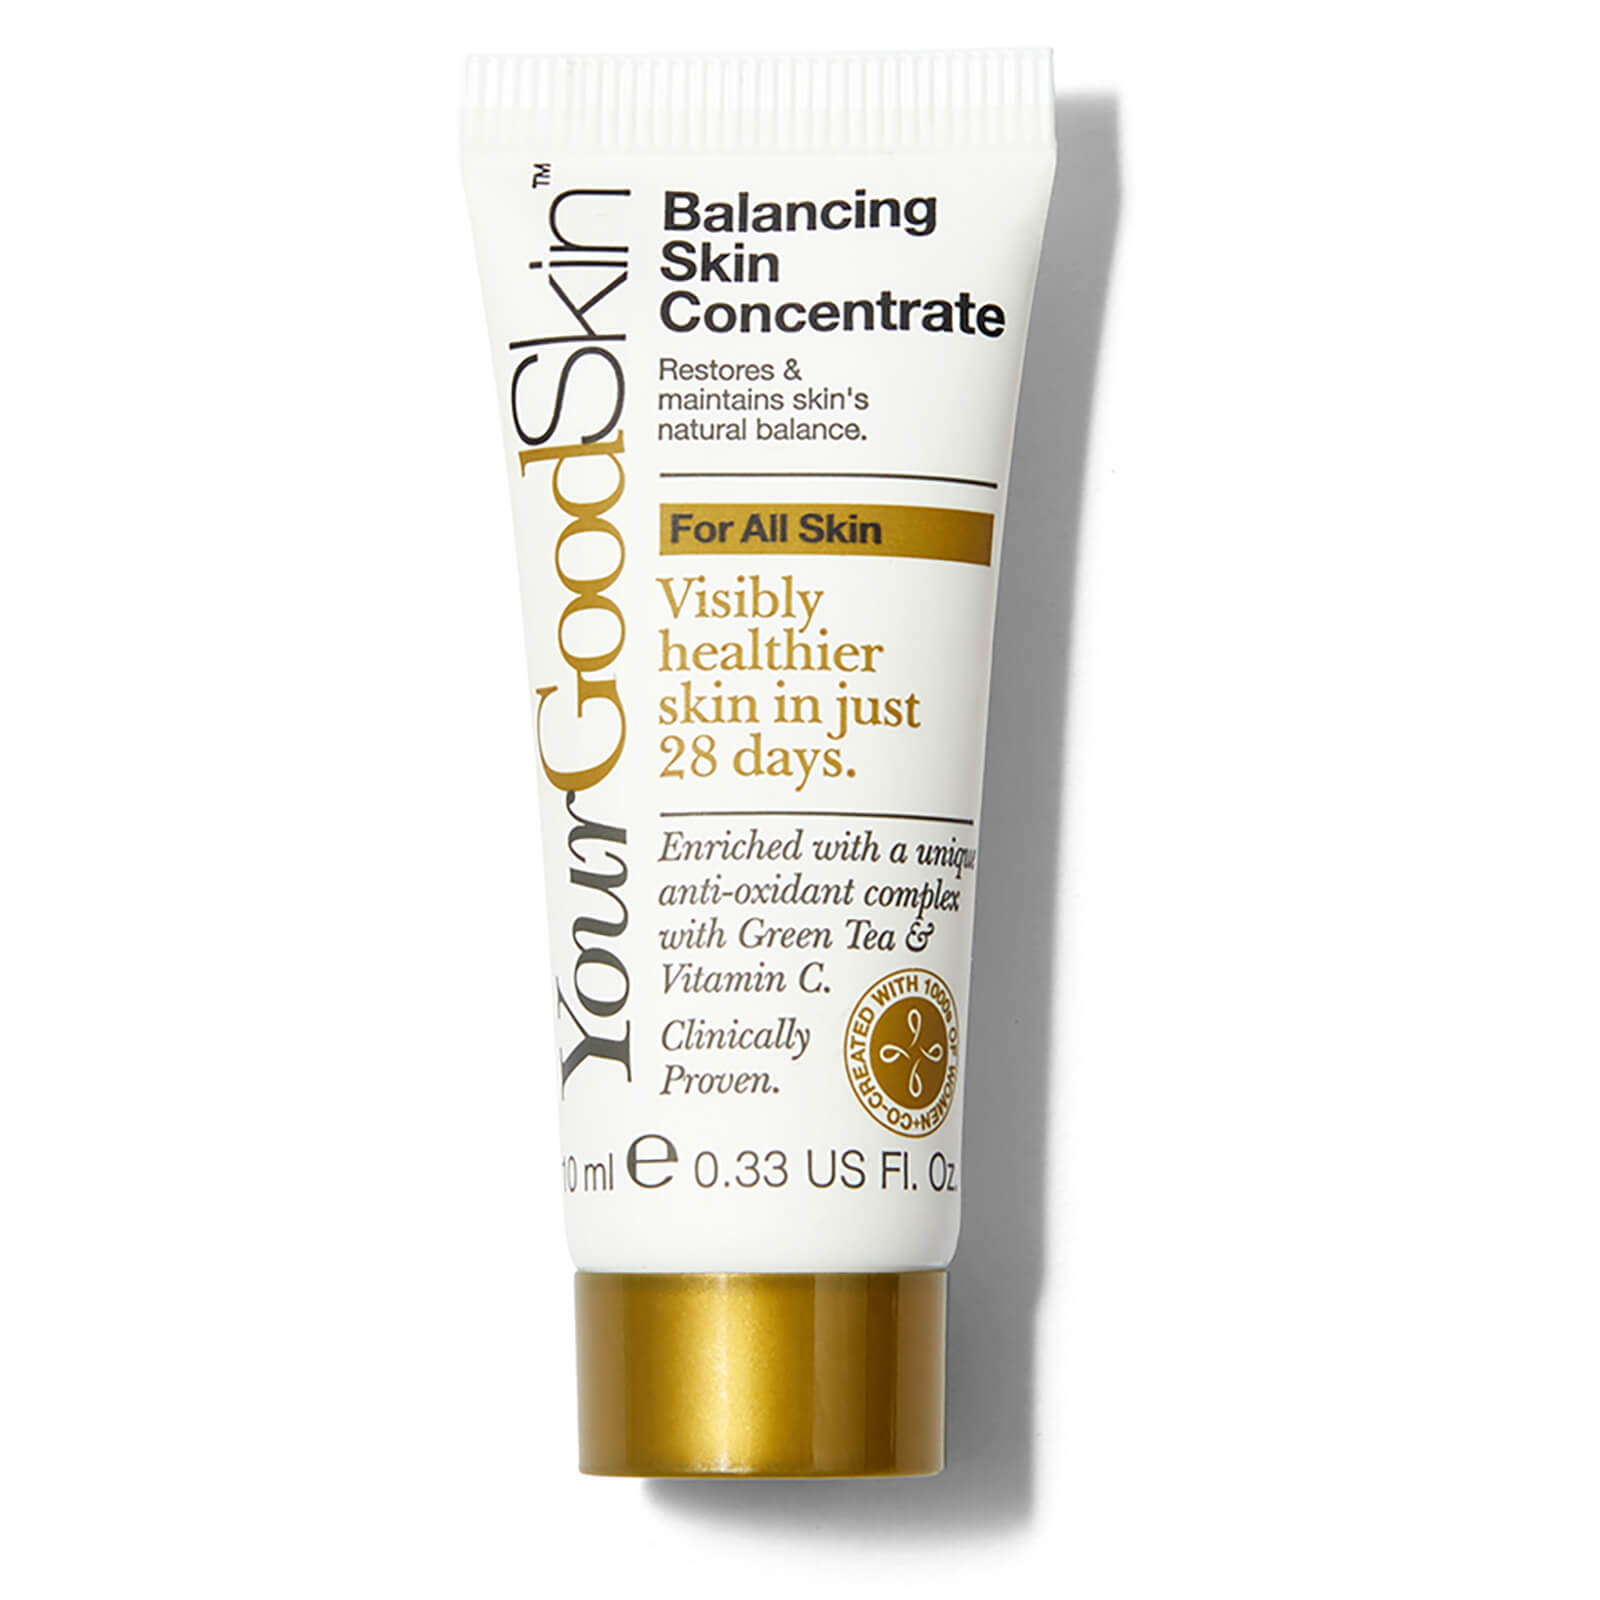 Balancing Skin Concentrate by YourGoodSkin #3